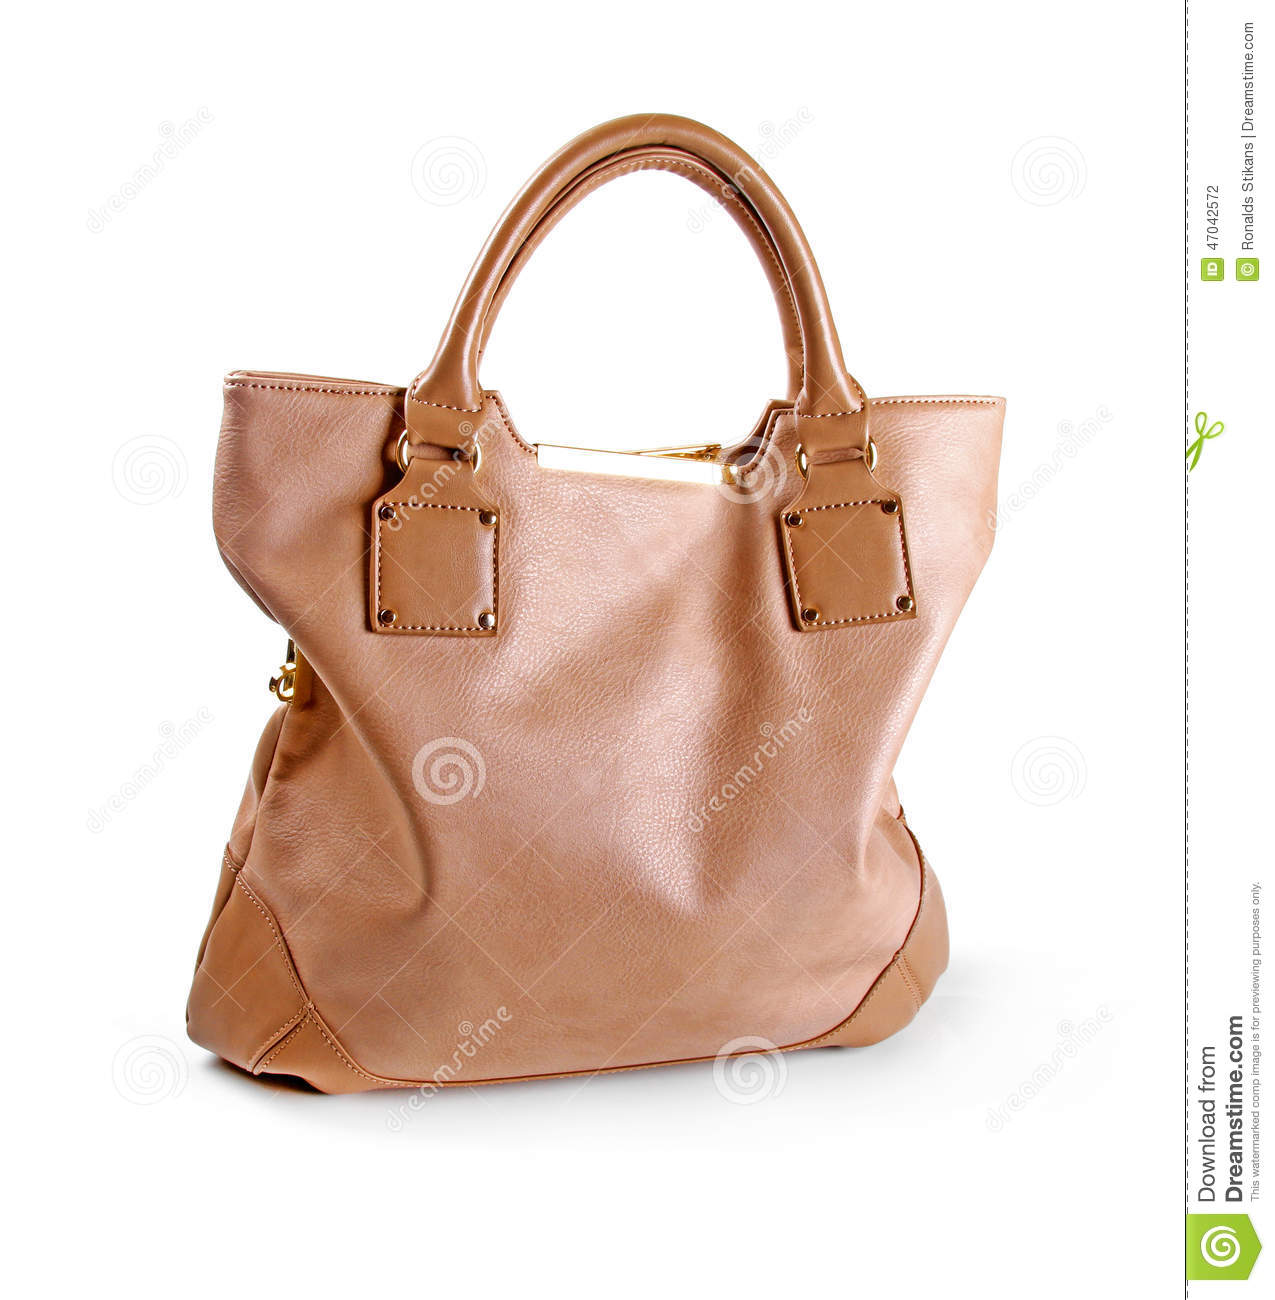 6b20272bed Brown Leather Women Bag Isolated On White Stock Photo - Image of ...